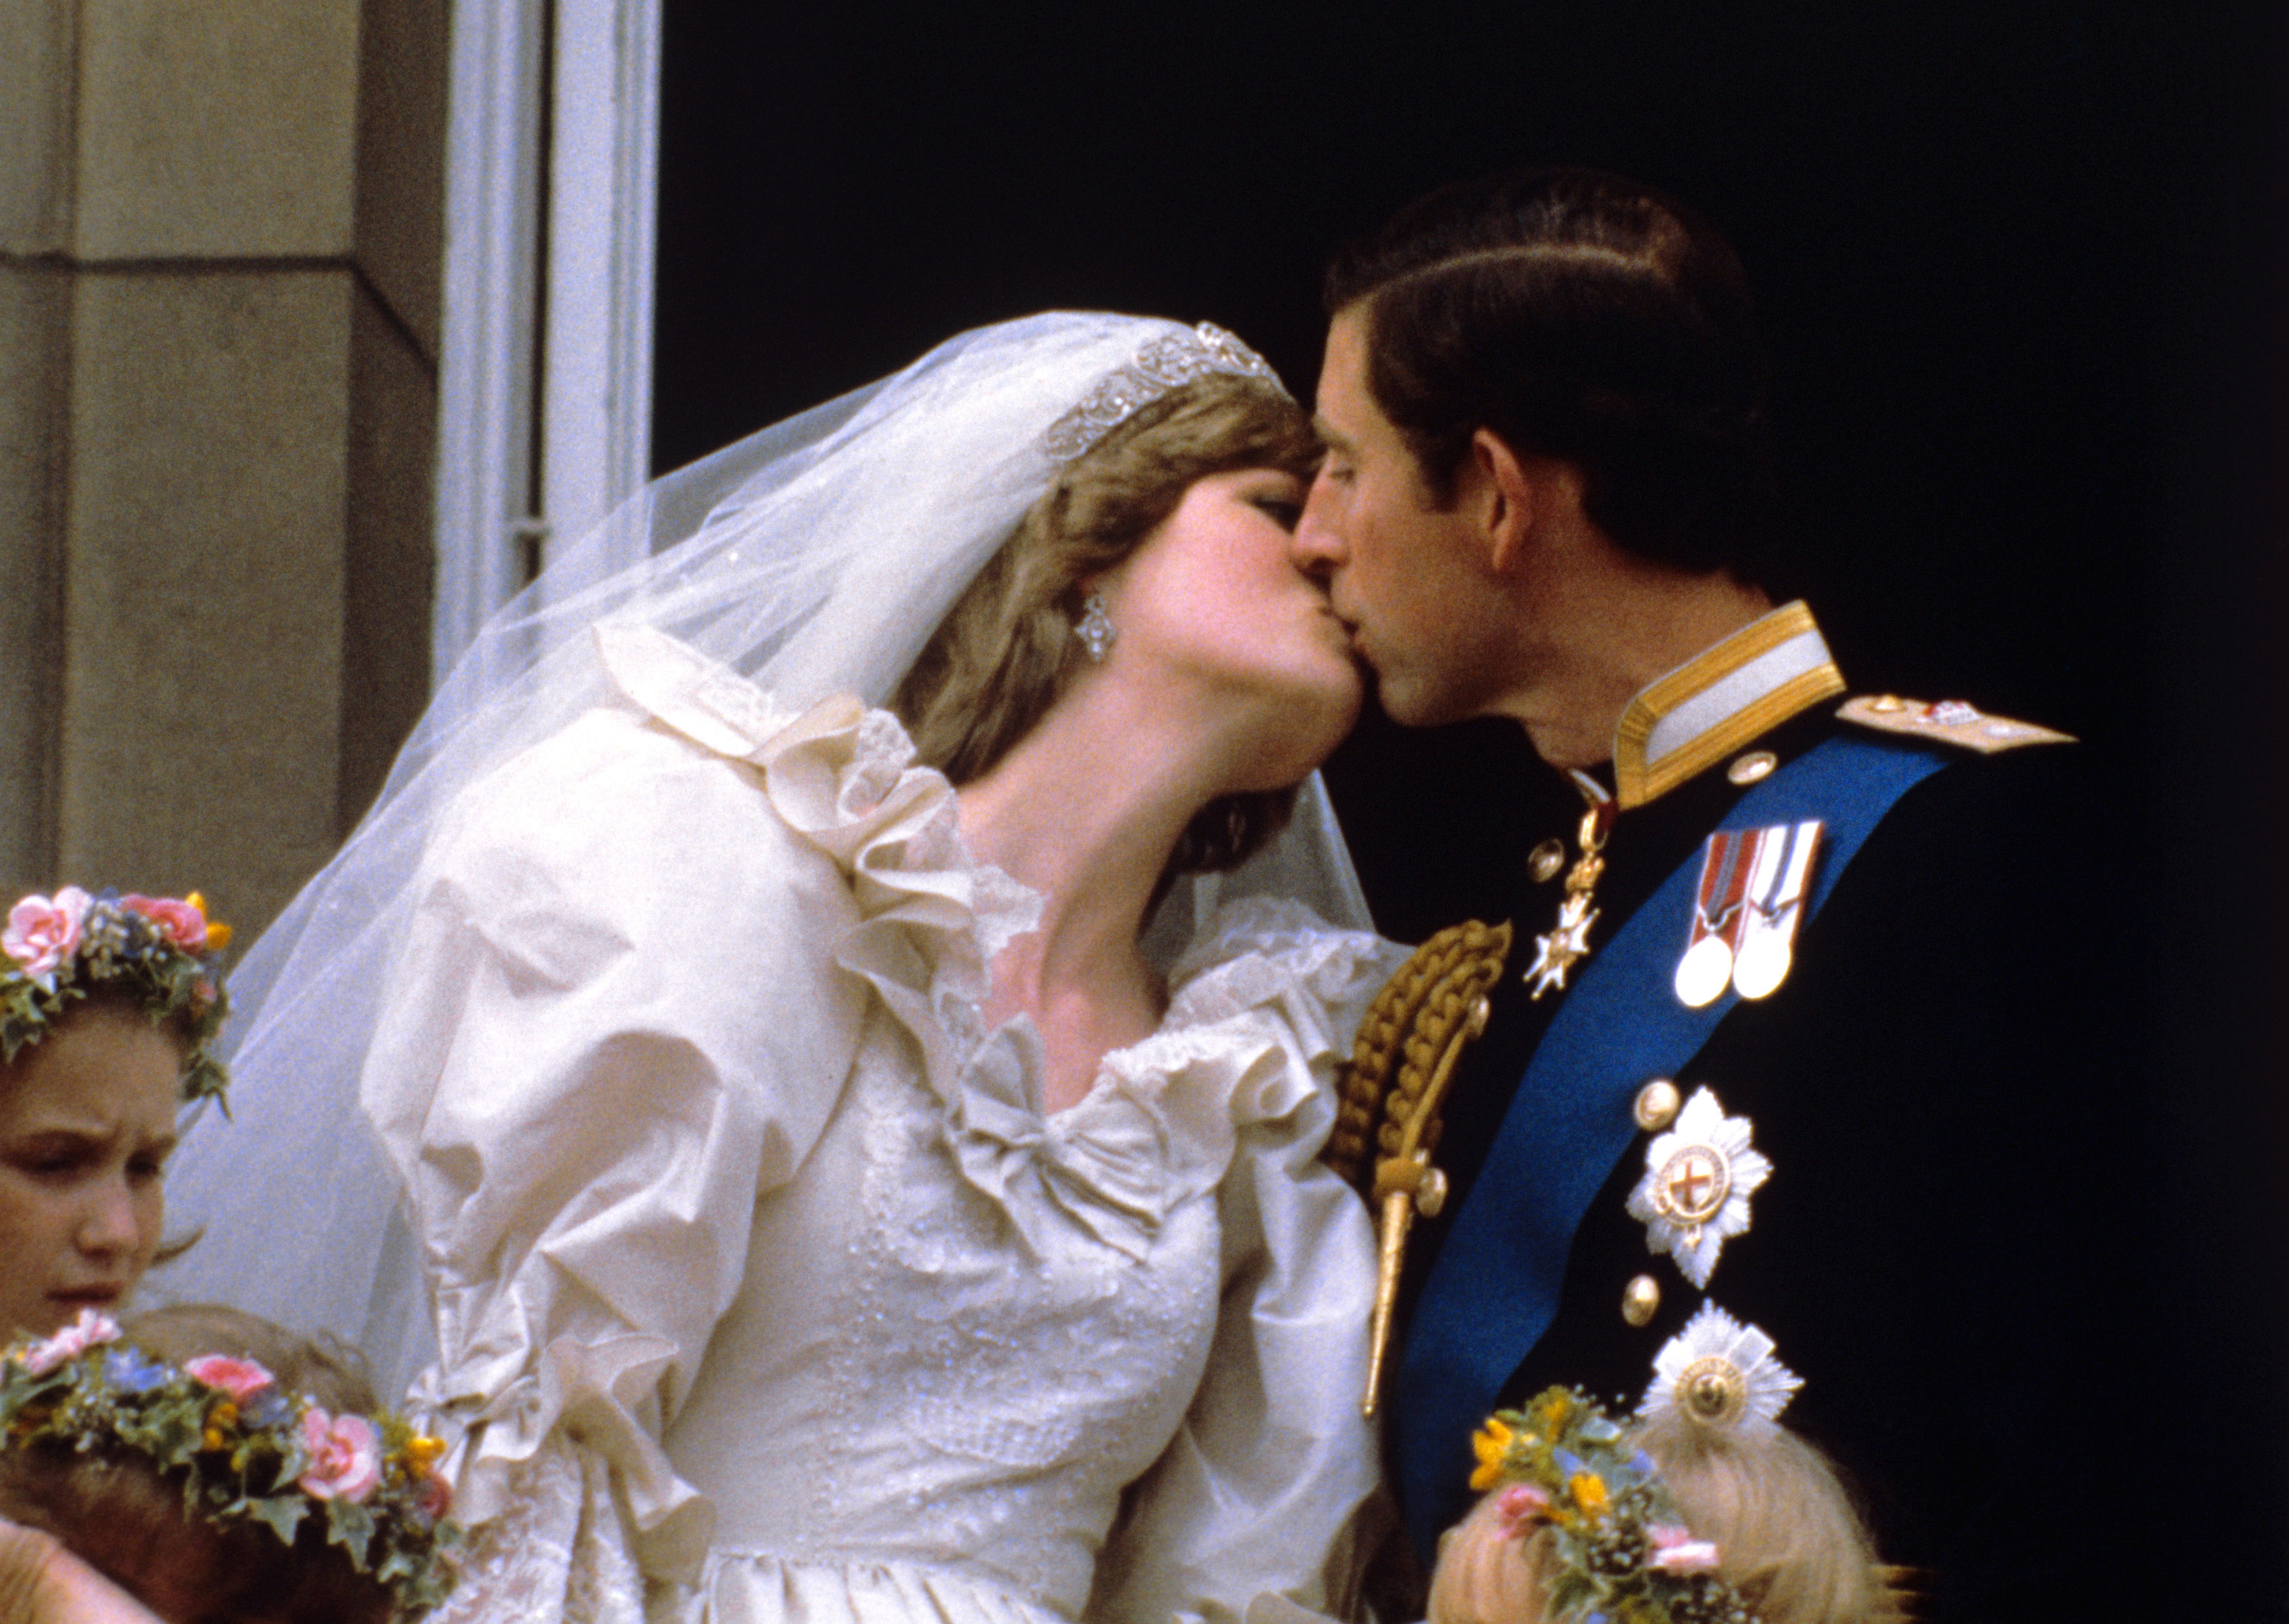 The dress exchange pocklington - The Prince And Princess Of Wales Kissing On The Balcony Of Buckingham Palace London